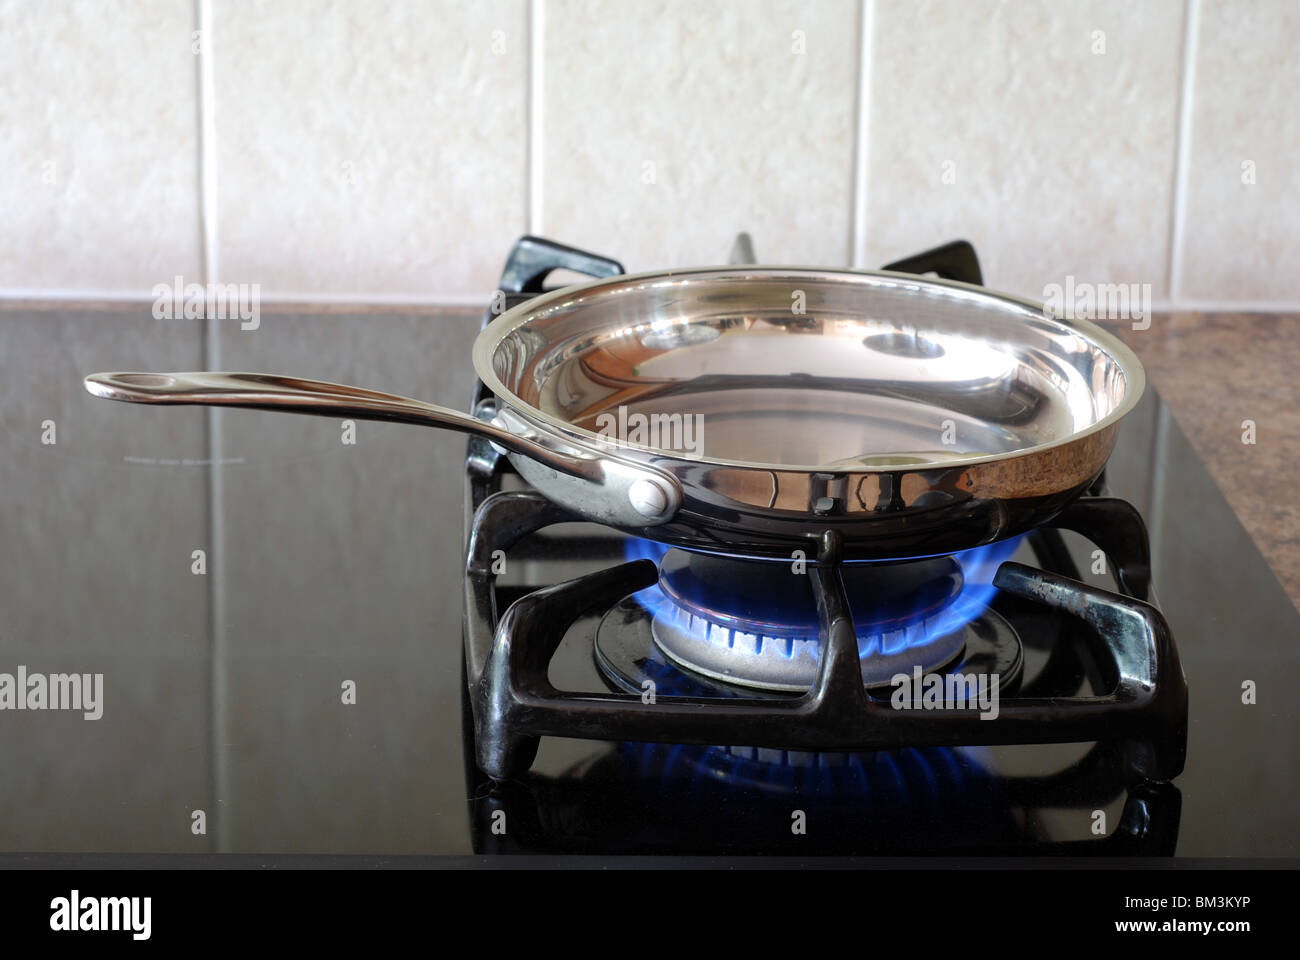 Cooking in a frying pan on a gas stove - Stock Image